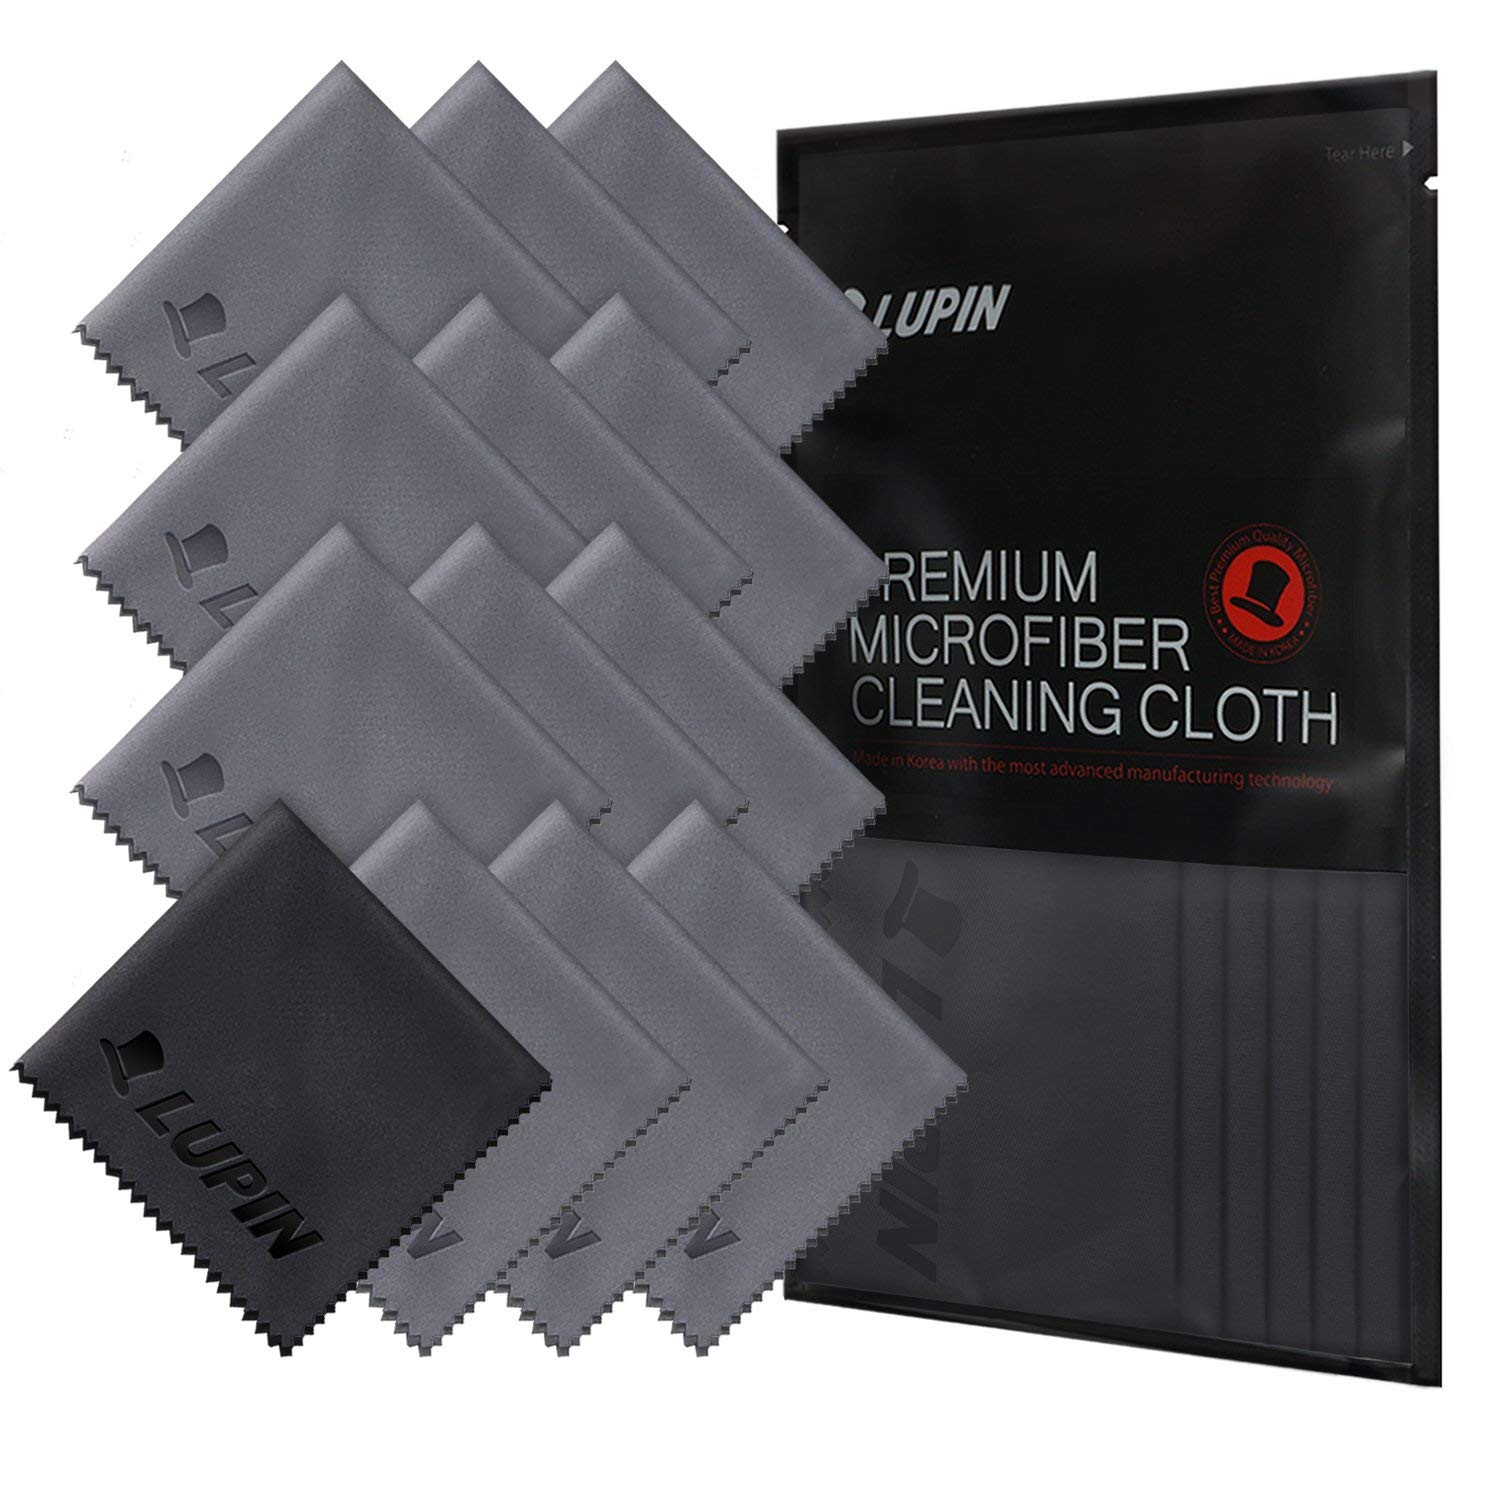 Lupin Microfiber Cleaning Cloths, 13 Pack Premium Ultra Lint Polishing Cloth for Cell Phone, Tablets, Laptops, iPad, Glasses, Auto Detail, TV Screens & Other Surfaces with Carrying Case - Gray by Ringke